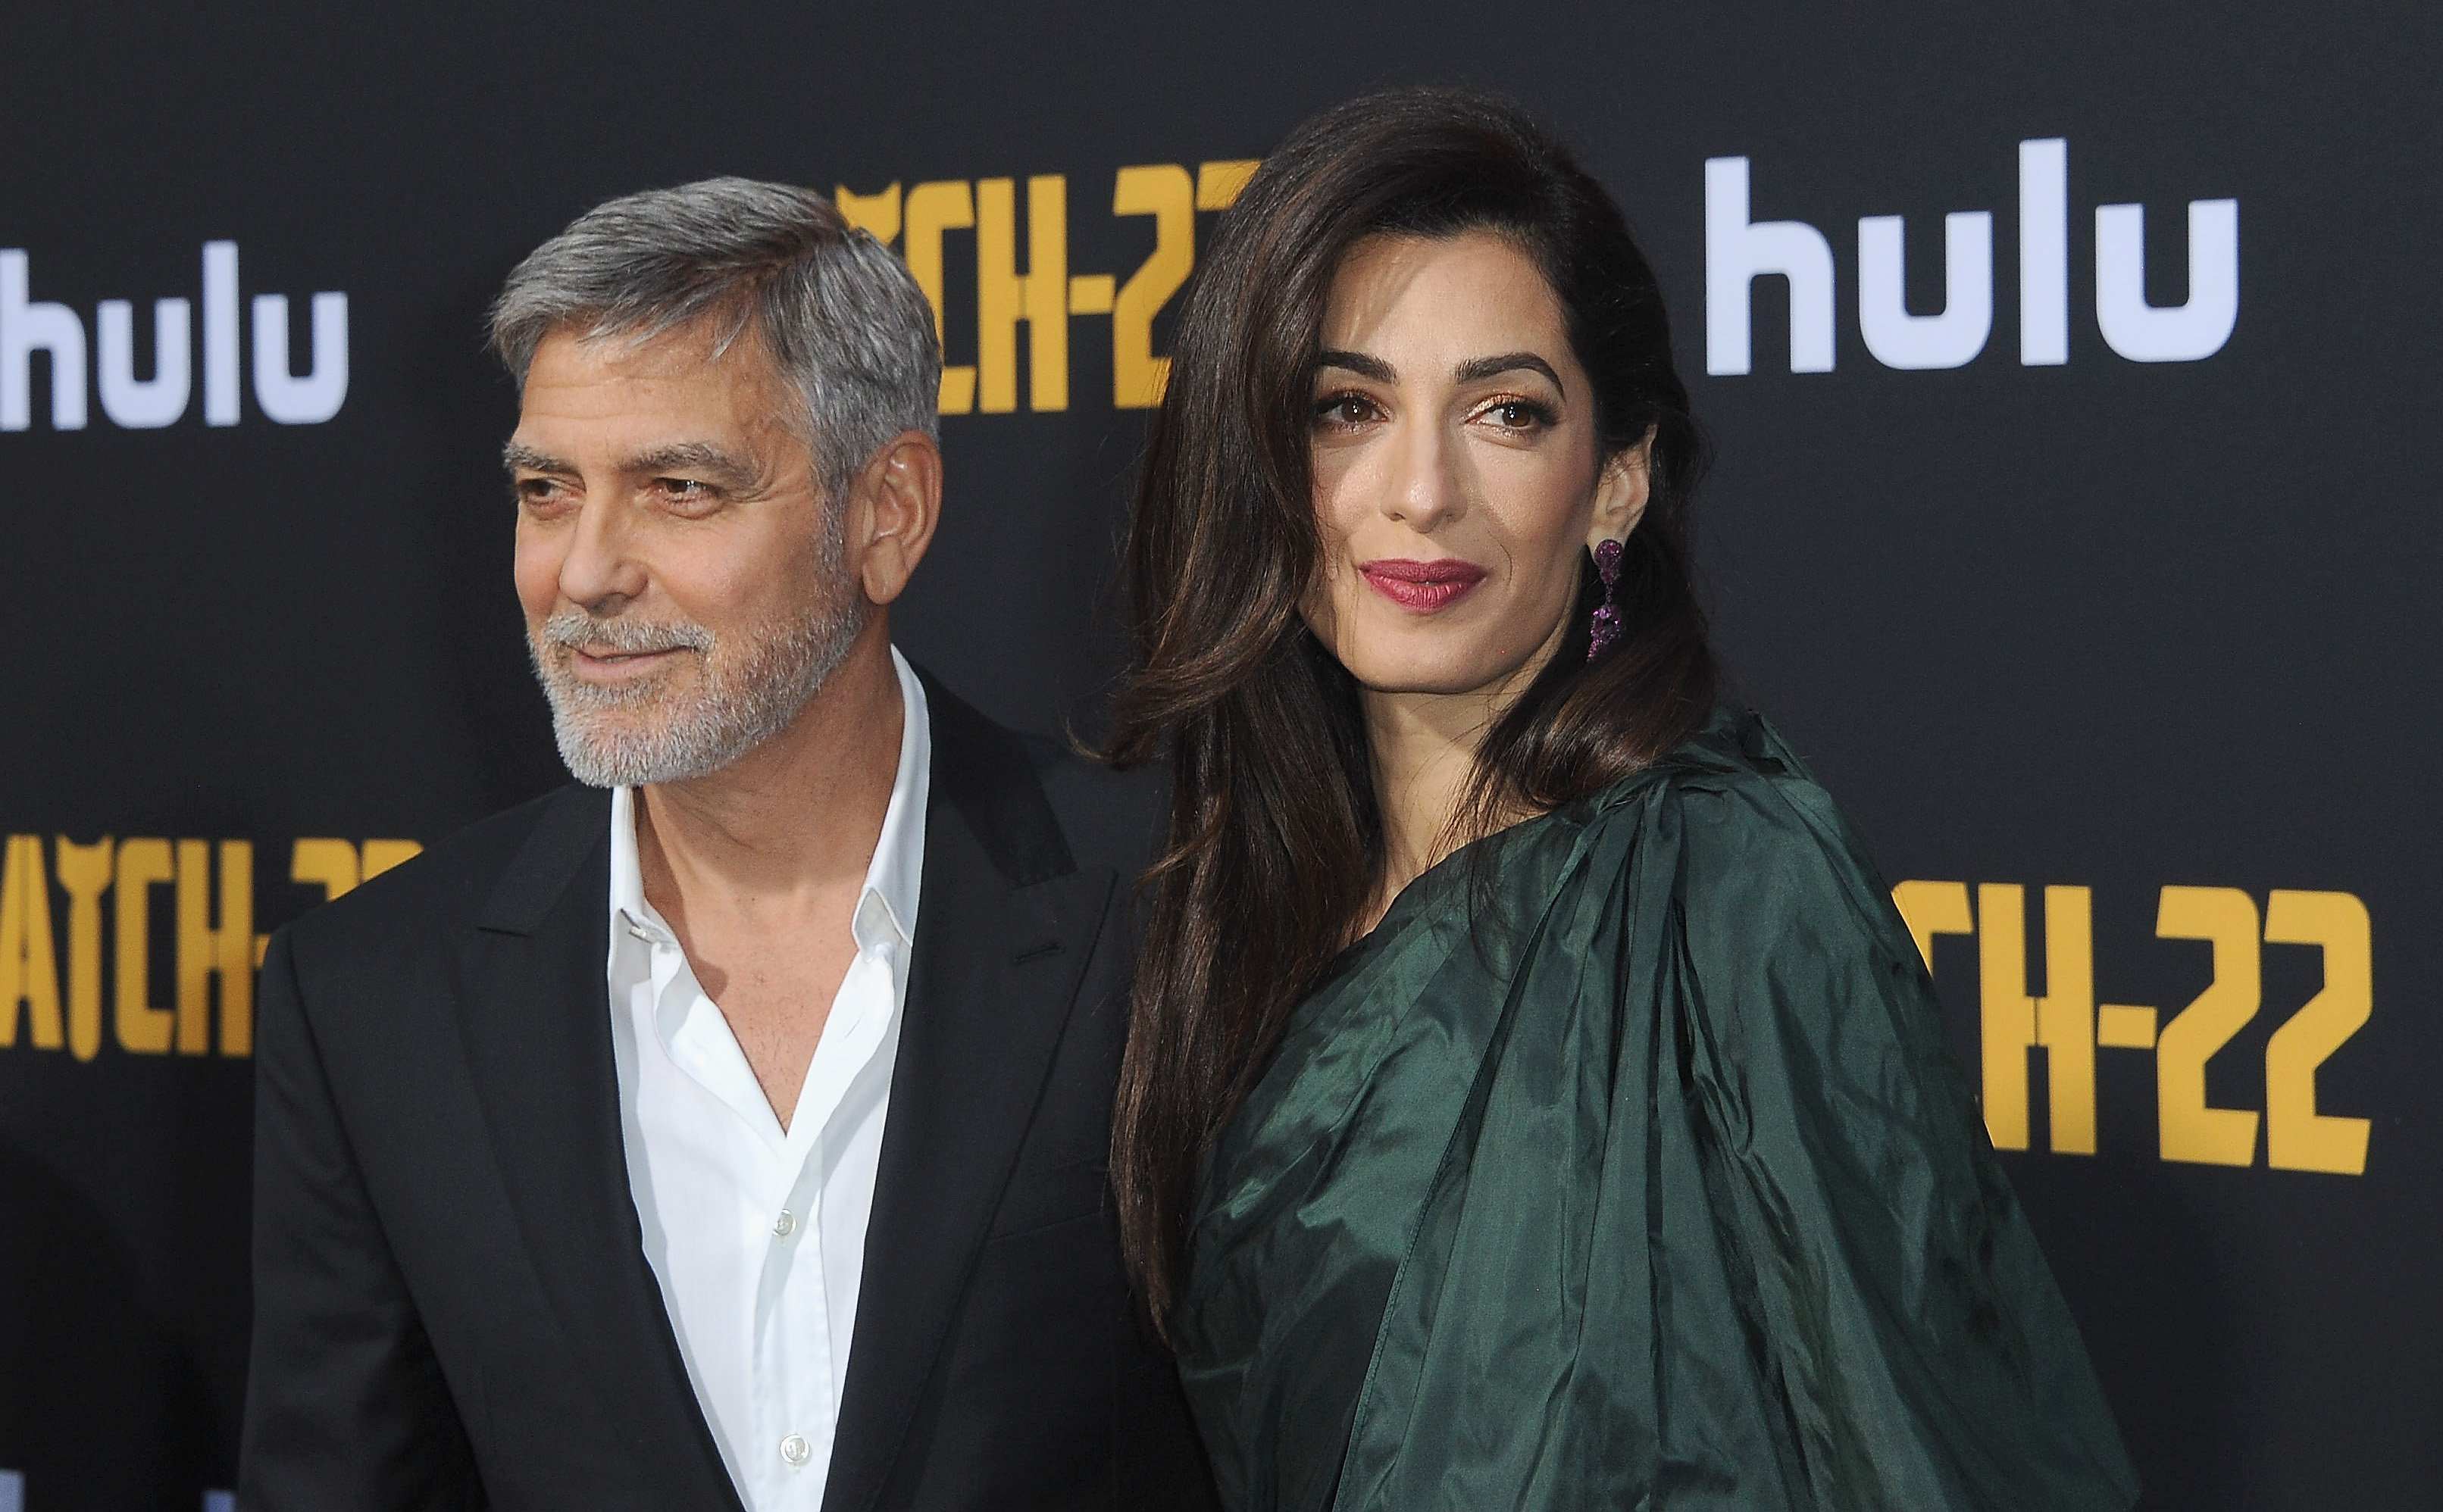 """George Clooney and Amal Clooney arrive for the U.S. Premiere Of Hulu's """"Catch-22"""" held at TCL Chinese Theatre on May 7, 2019, in Hollywood, California. 